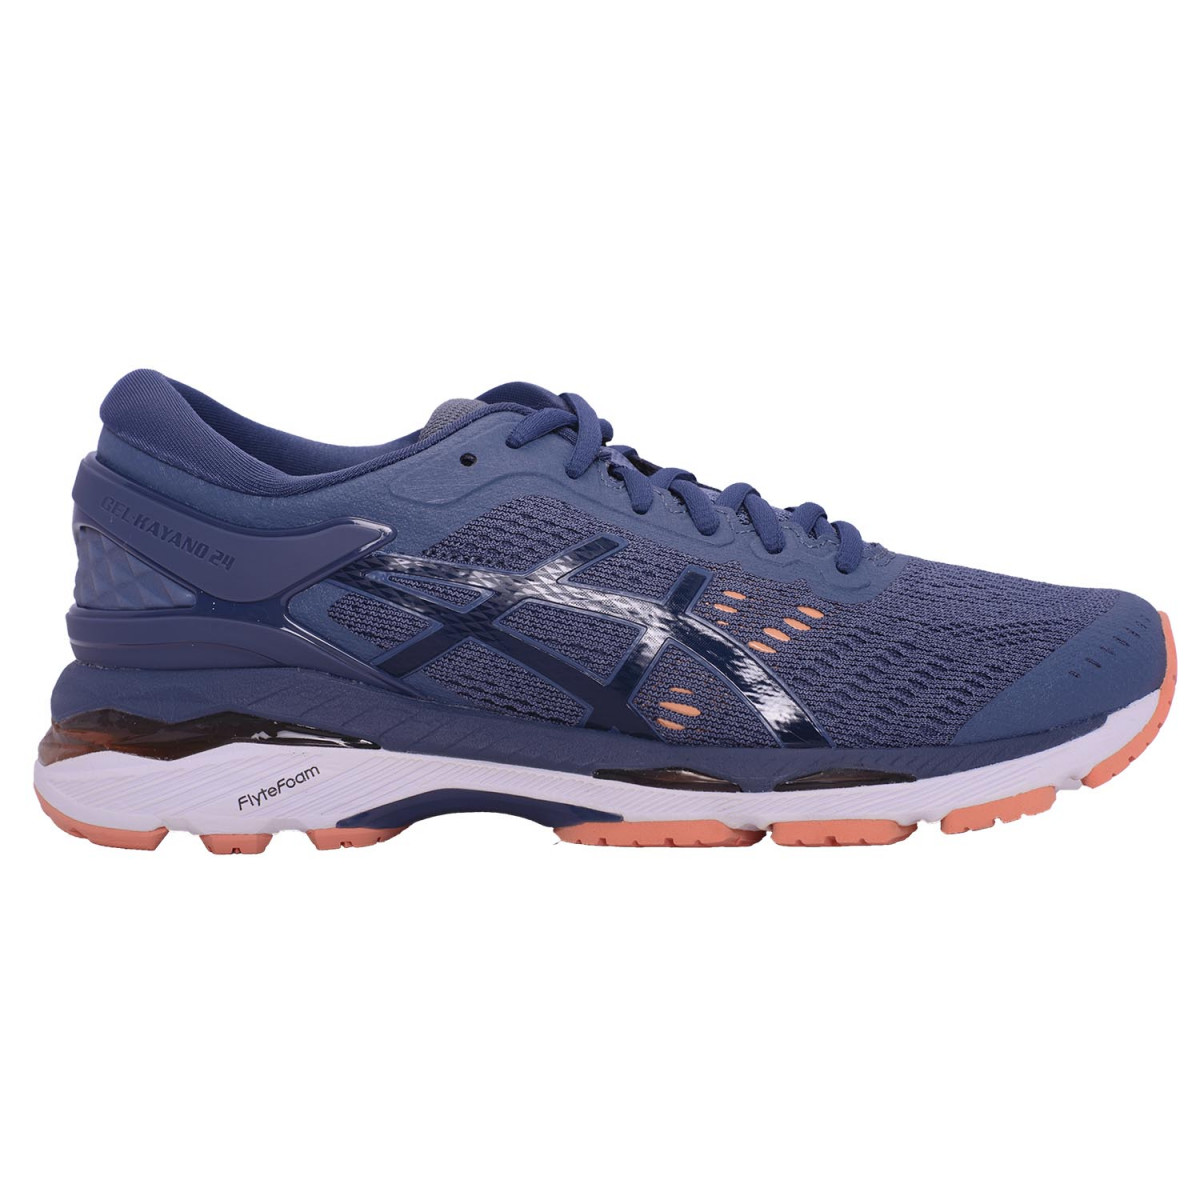 Zapatillas Asics Gel-Kayano 24